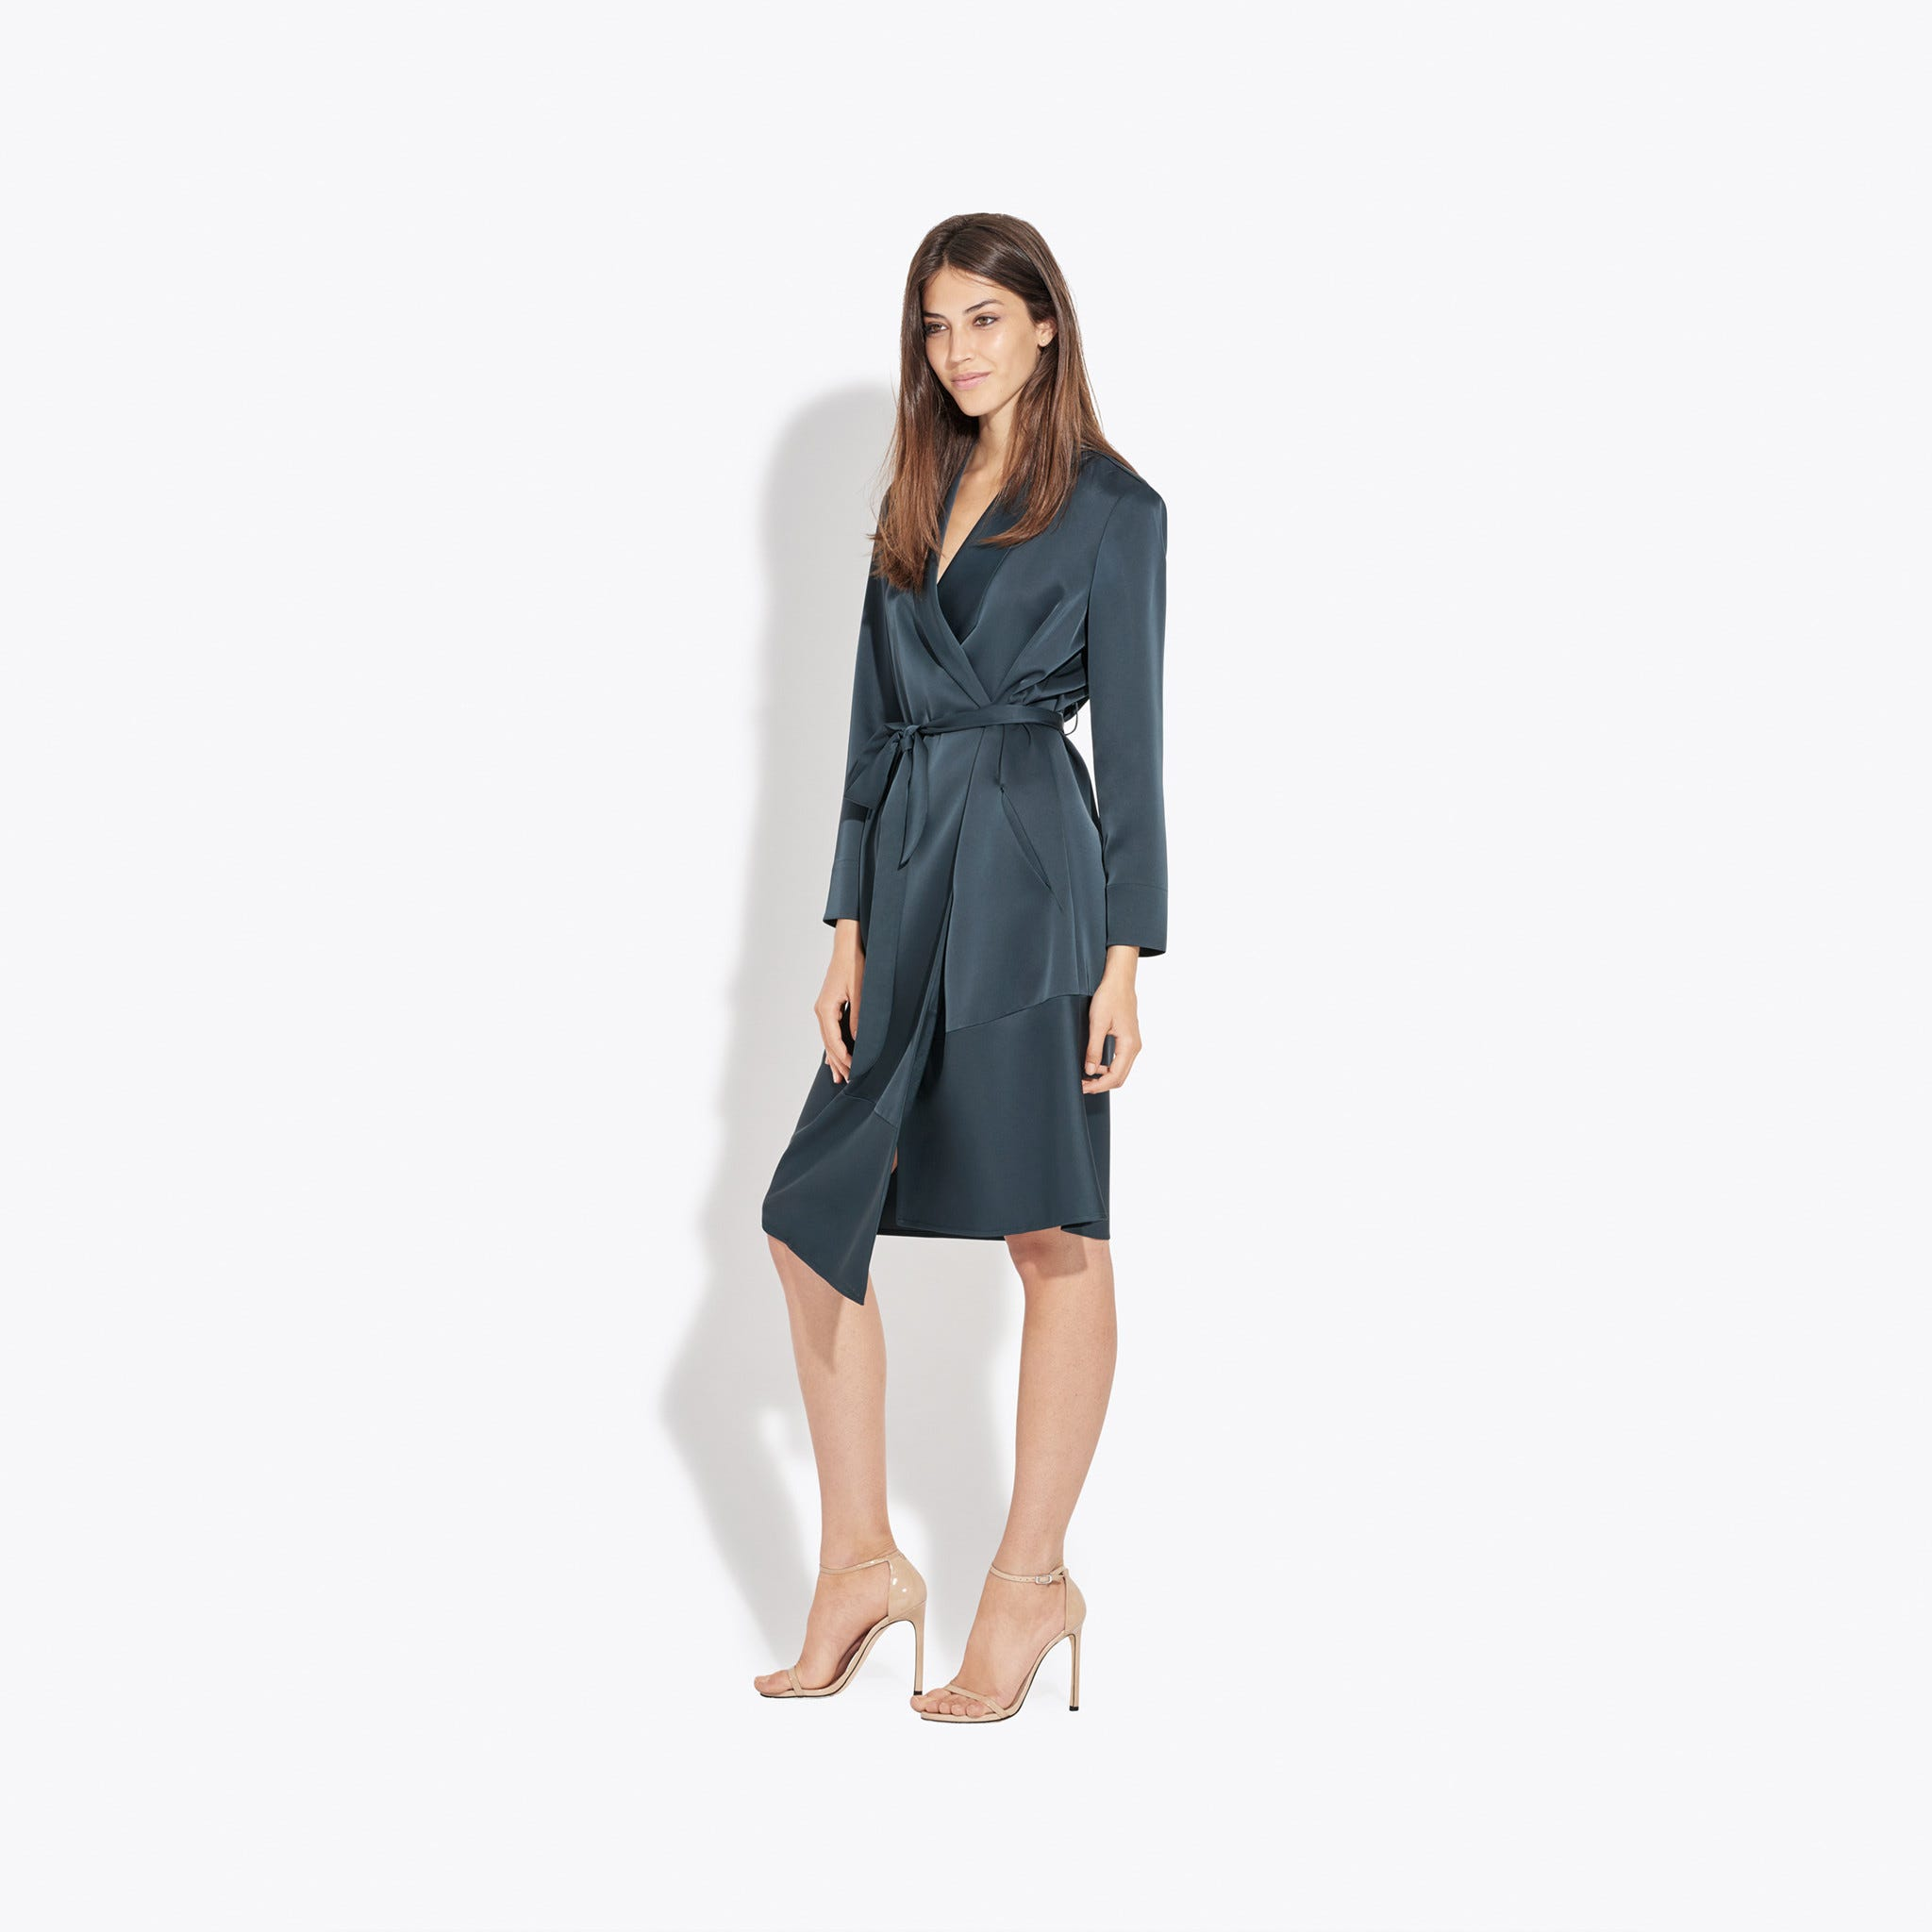 The best part about a women's business casual dress is the comfort and versatility. Conservative and simple dresses are easy to spruce up with a few accessories; just add jewelry or a scarf and you can create many original outfits.